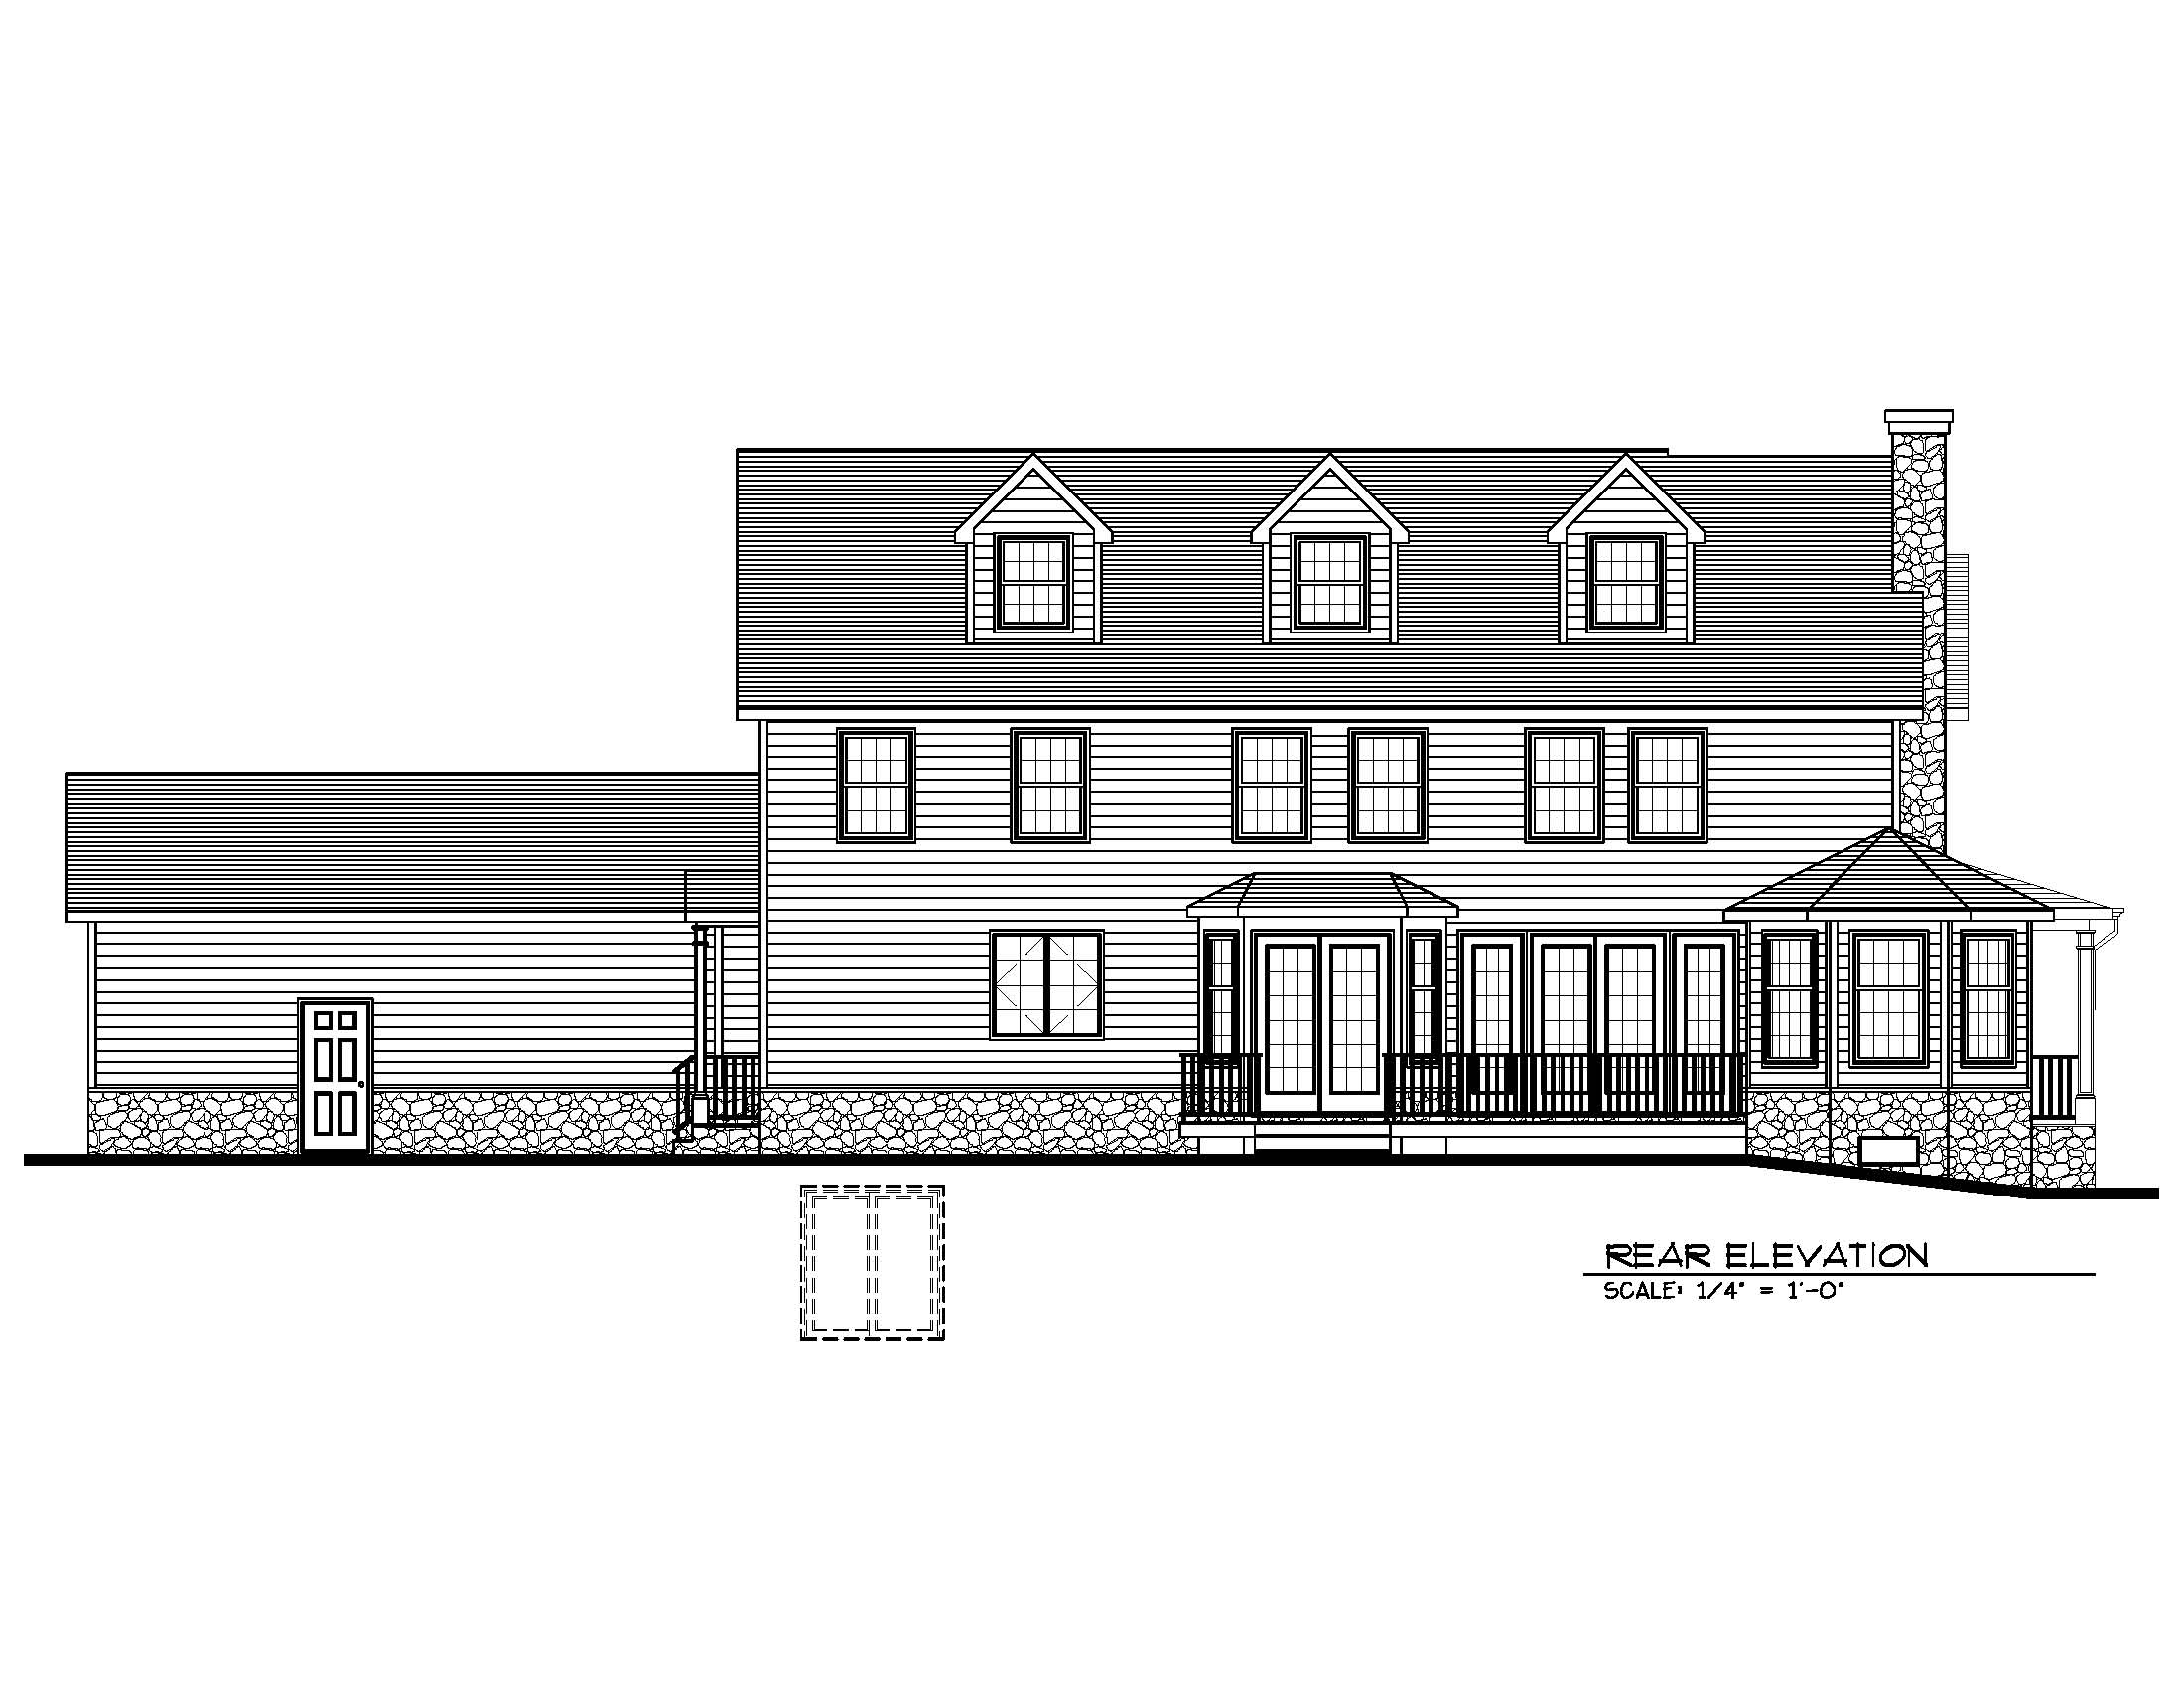 20 Barchester Rear Elevation